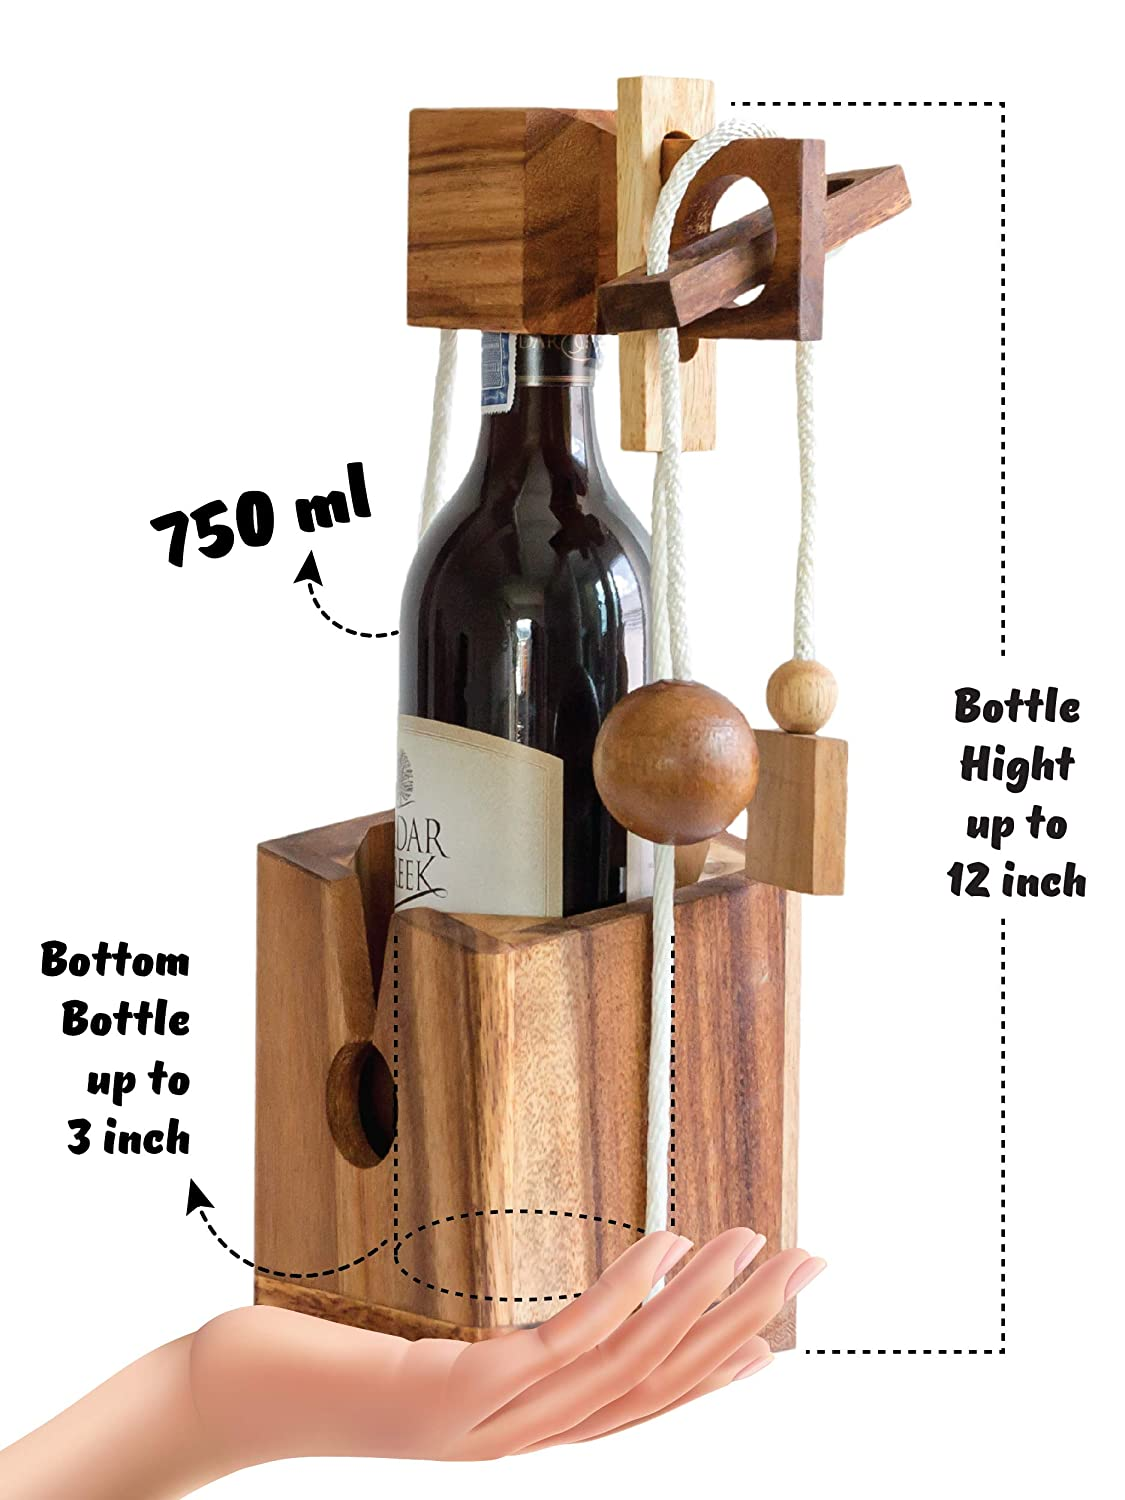 d9c368d1c92 Wine Gift Adult and Game Gifts Comes with Bottle Lock Challenges Wood Brain  Teaser Puzzles and Designs of Classic Unique Wooden to be a Puzzle Game ...